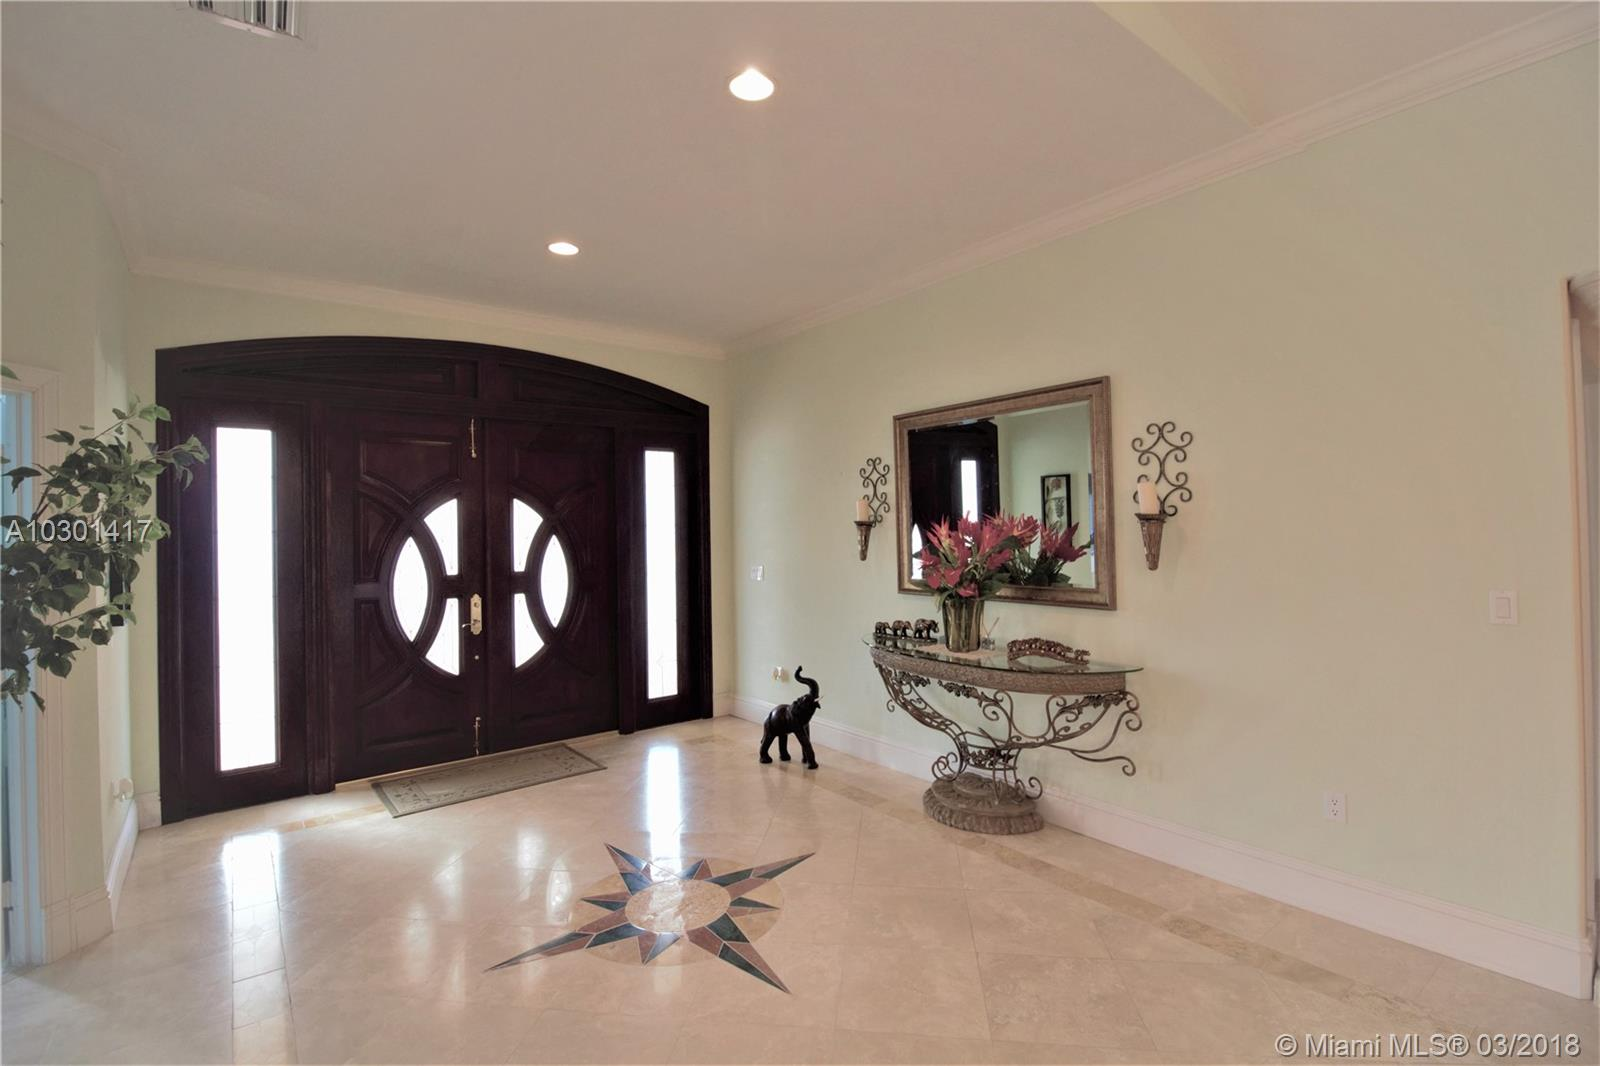 5290 Sw 130th Ave, Southwest Ranches FL, 33330